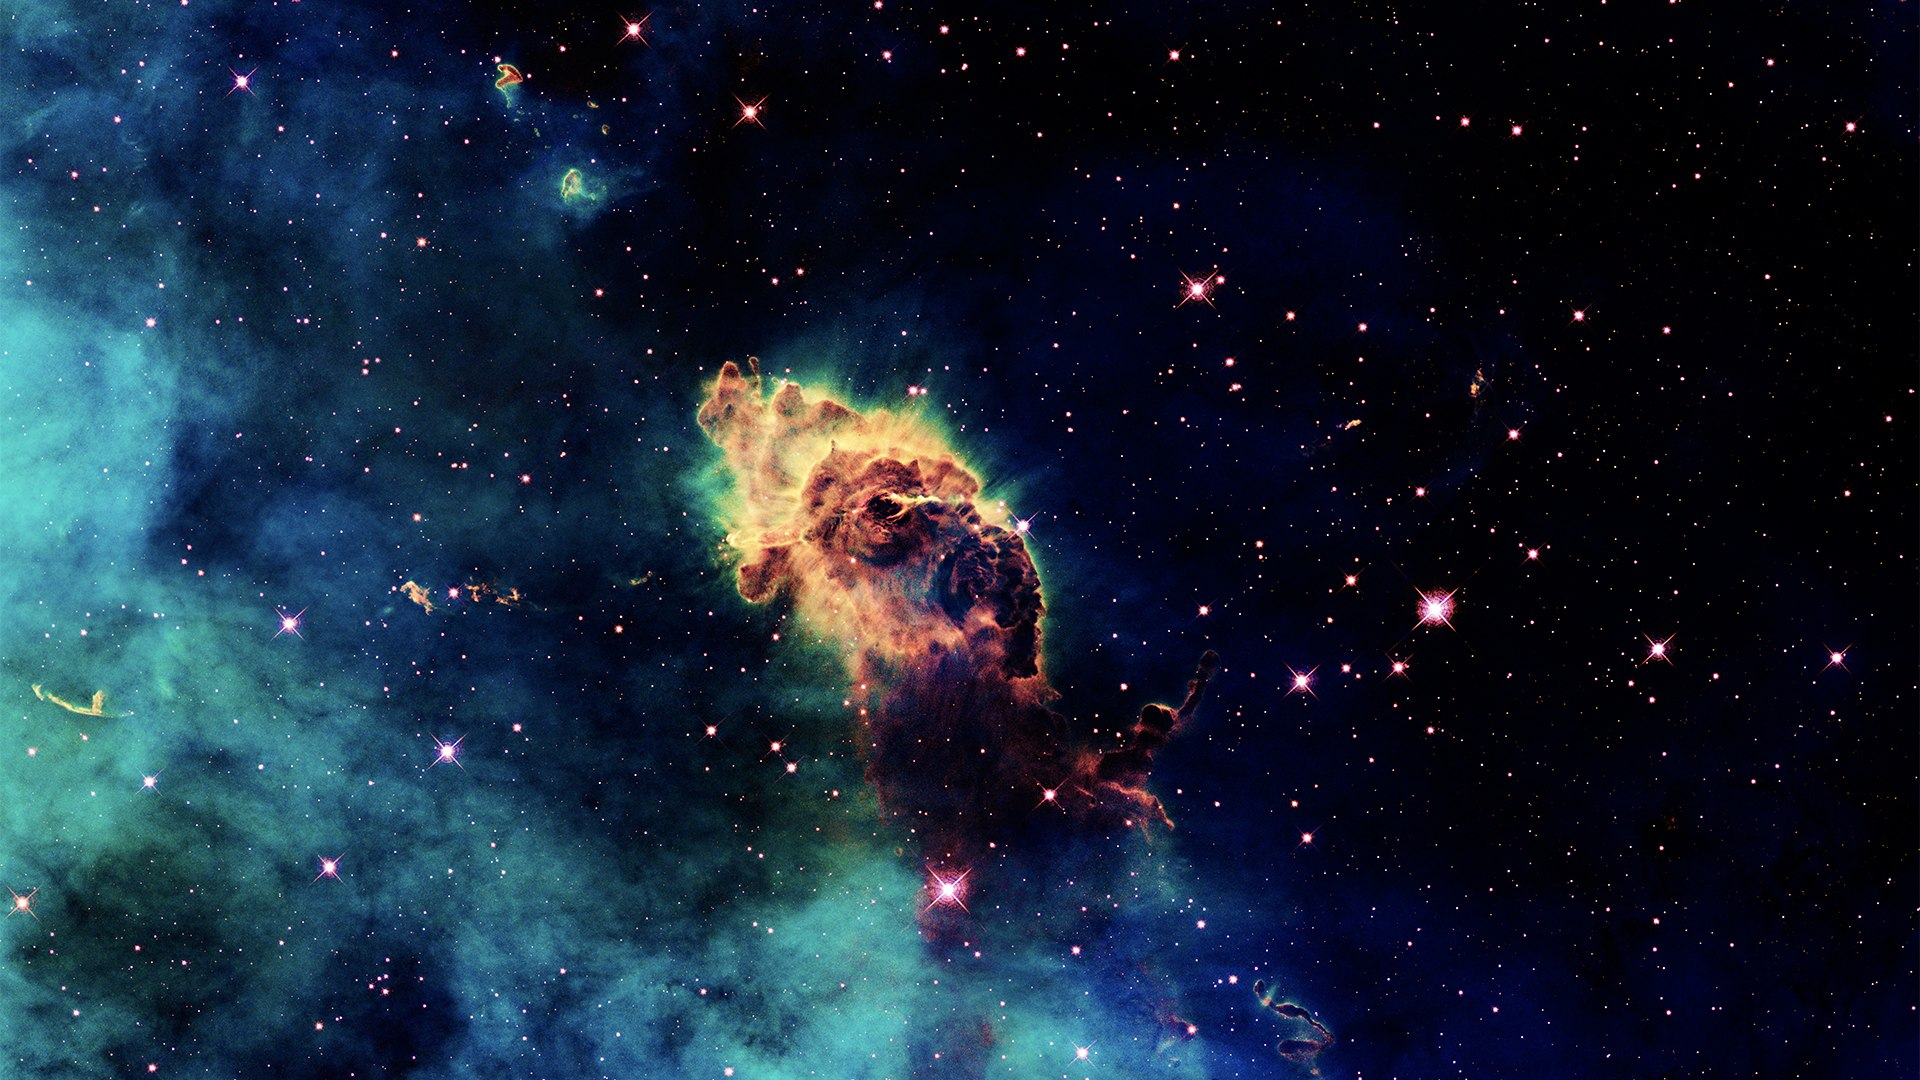 space desktop wallpaper backgrounds - photo #32